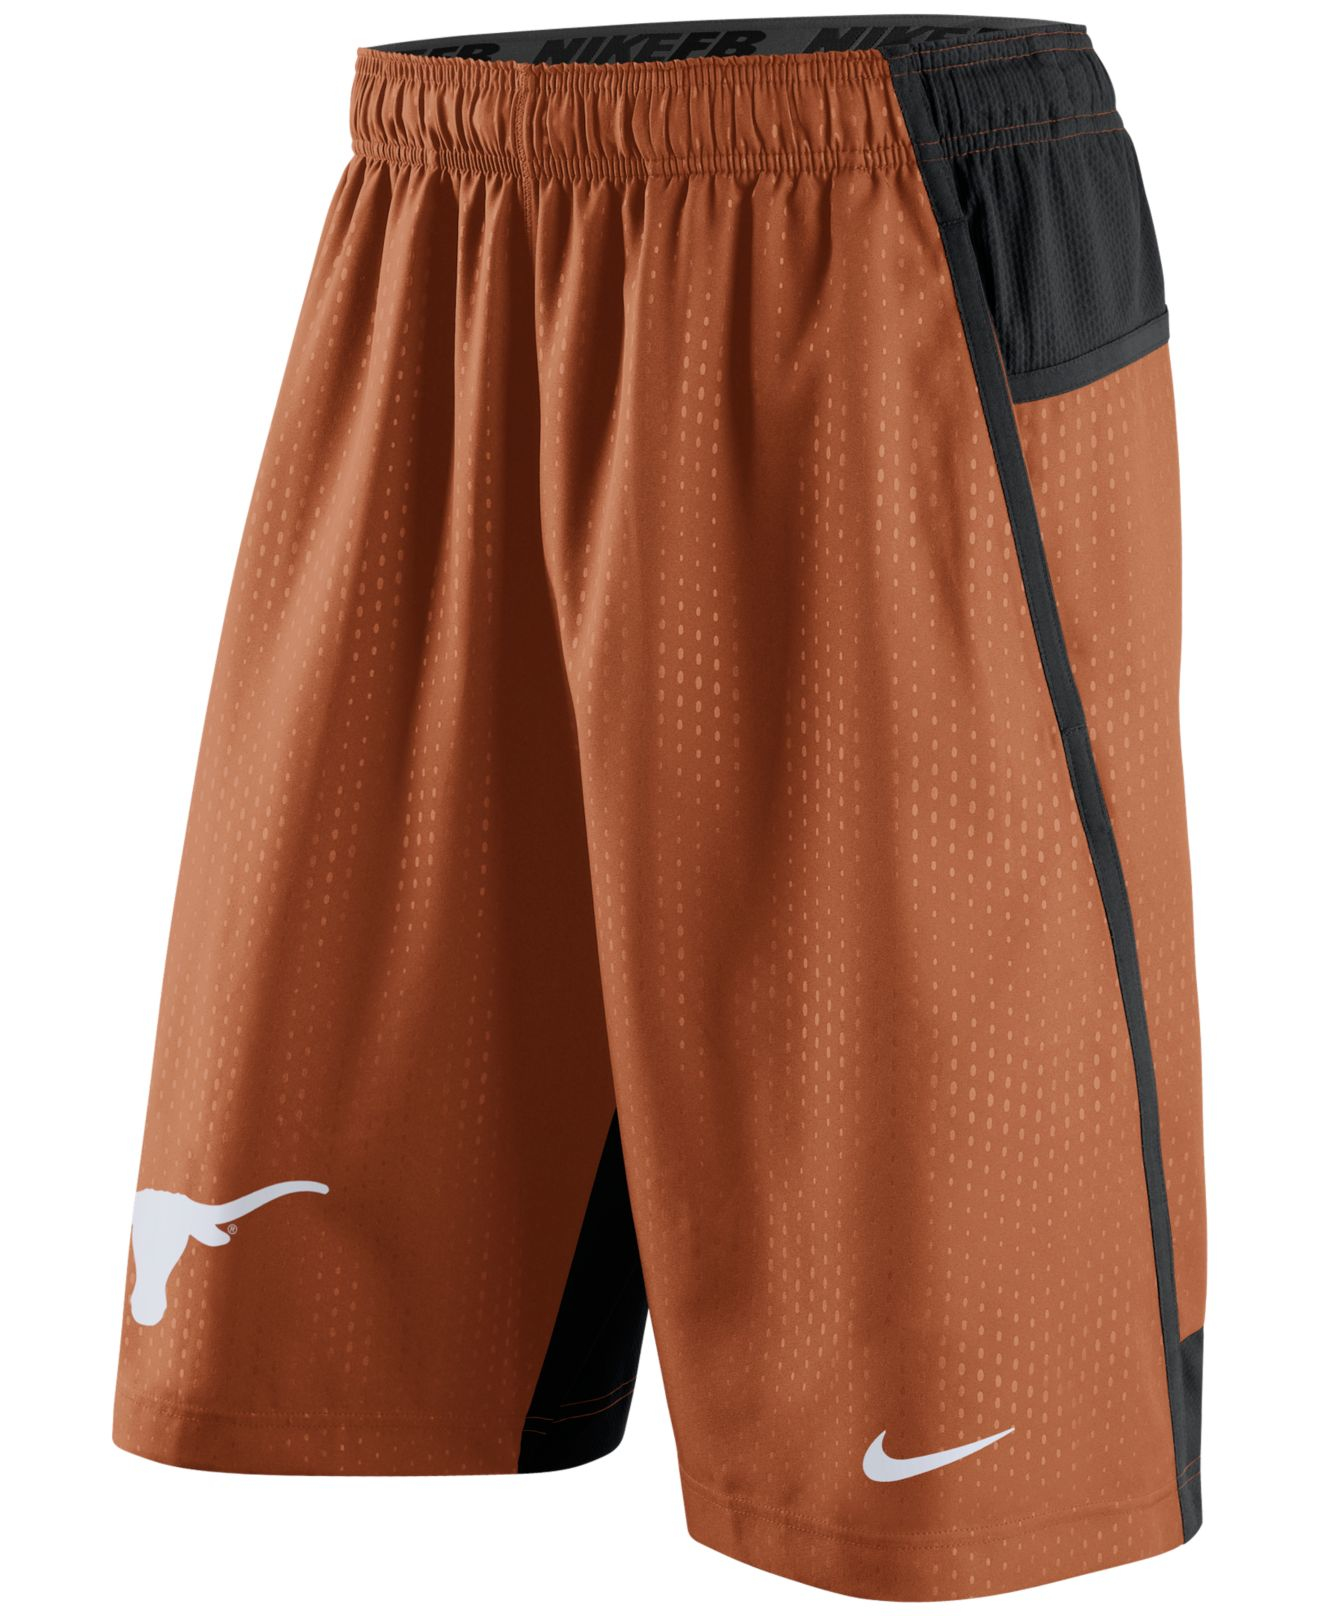 Shop men's orange shorts from DICK'S Sporting Goods today. If you find a lower price on men's orange shorts somewhere else, we'll match it with our Best Price Guarantee! Check out customer reviews on men's orange shorts and save big on a variety of products. Plus, ScoreCard members earn points on every purchase.